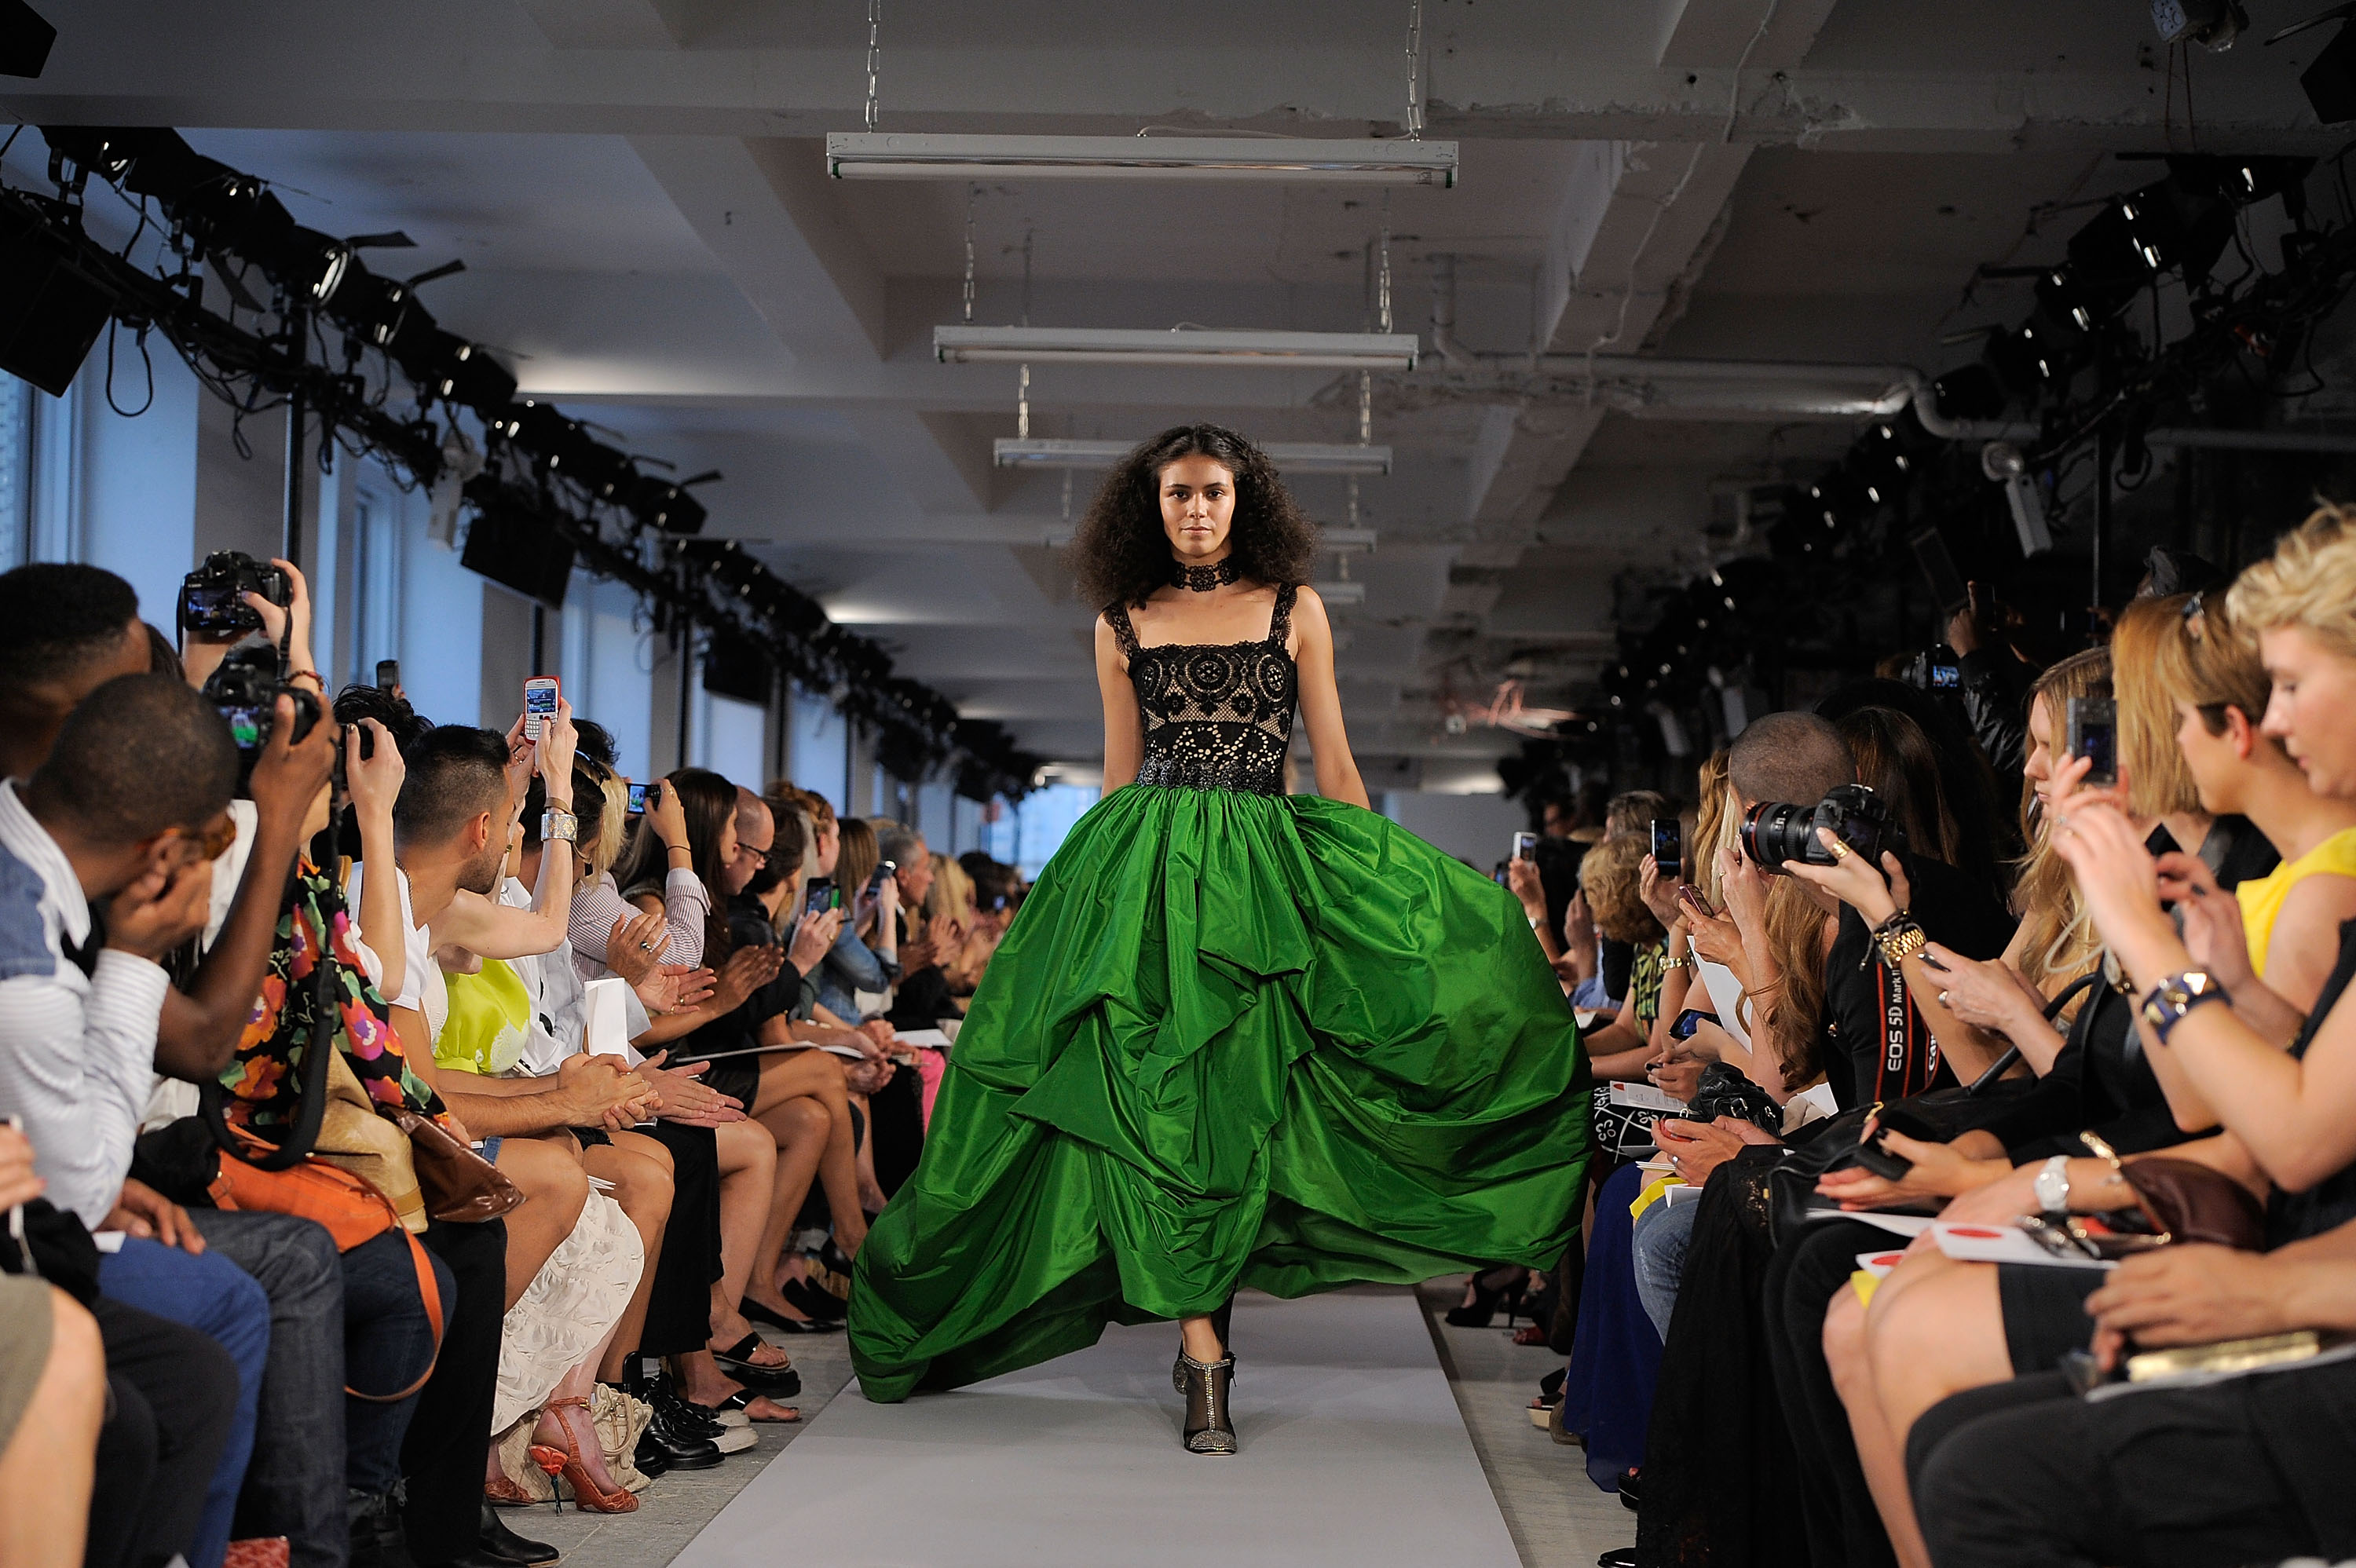 NEW YORK, NY - SEPTEMBER 13:  A model walks the runway at the Oscar De La Renta Spring 2012 fashion show during Mercedes-Benz Fashion Week on September 13, 2011 in New York City.  (Photo by Jemal Countess/Getty Images)